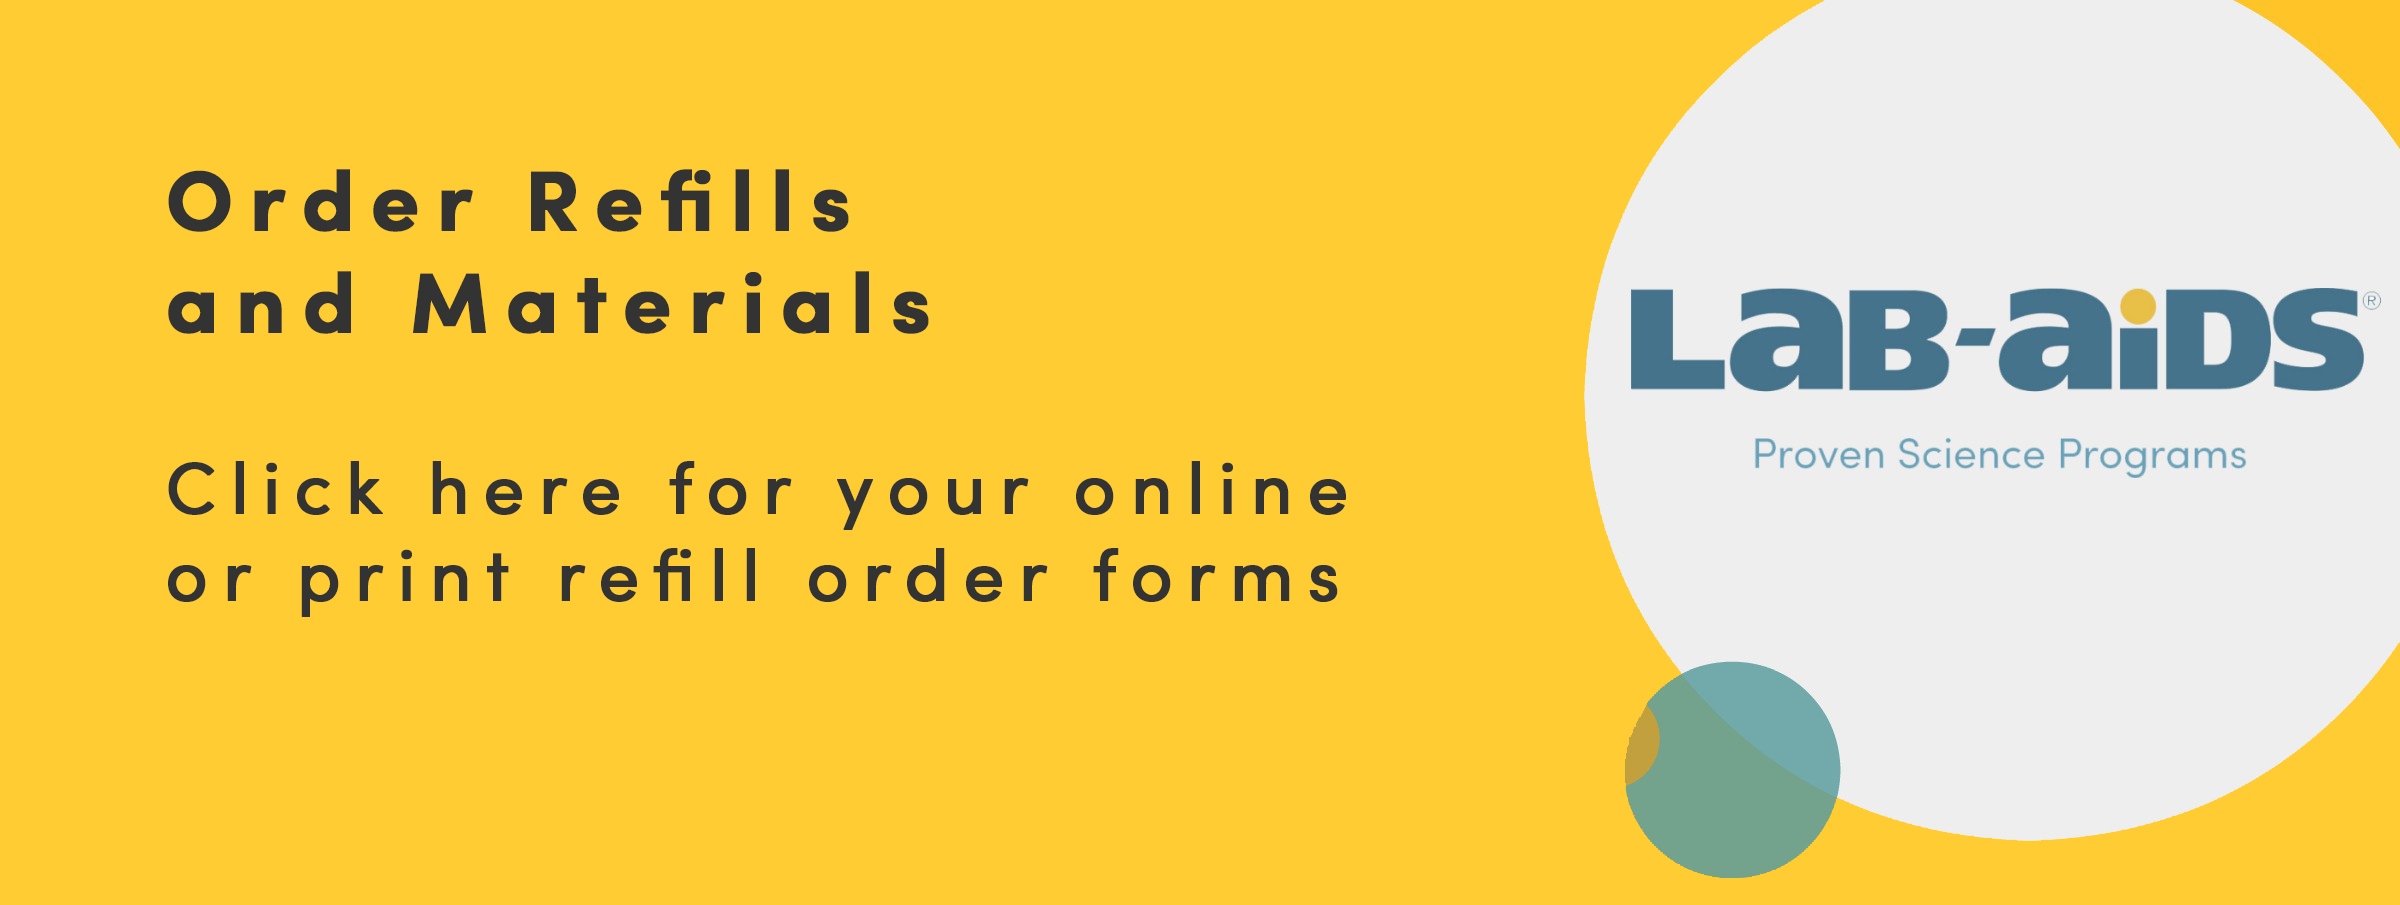 Refills and Materials Order Forms